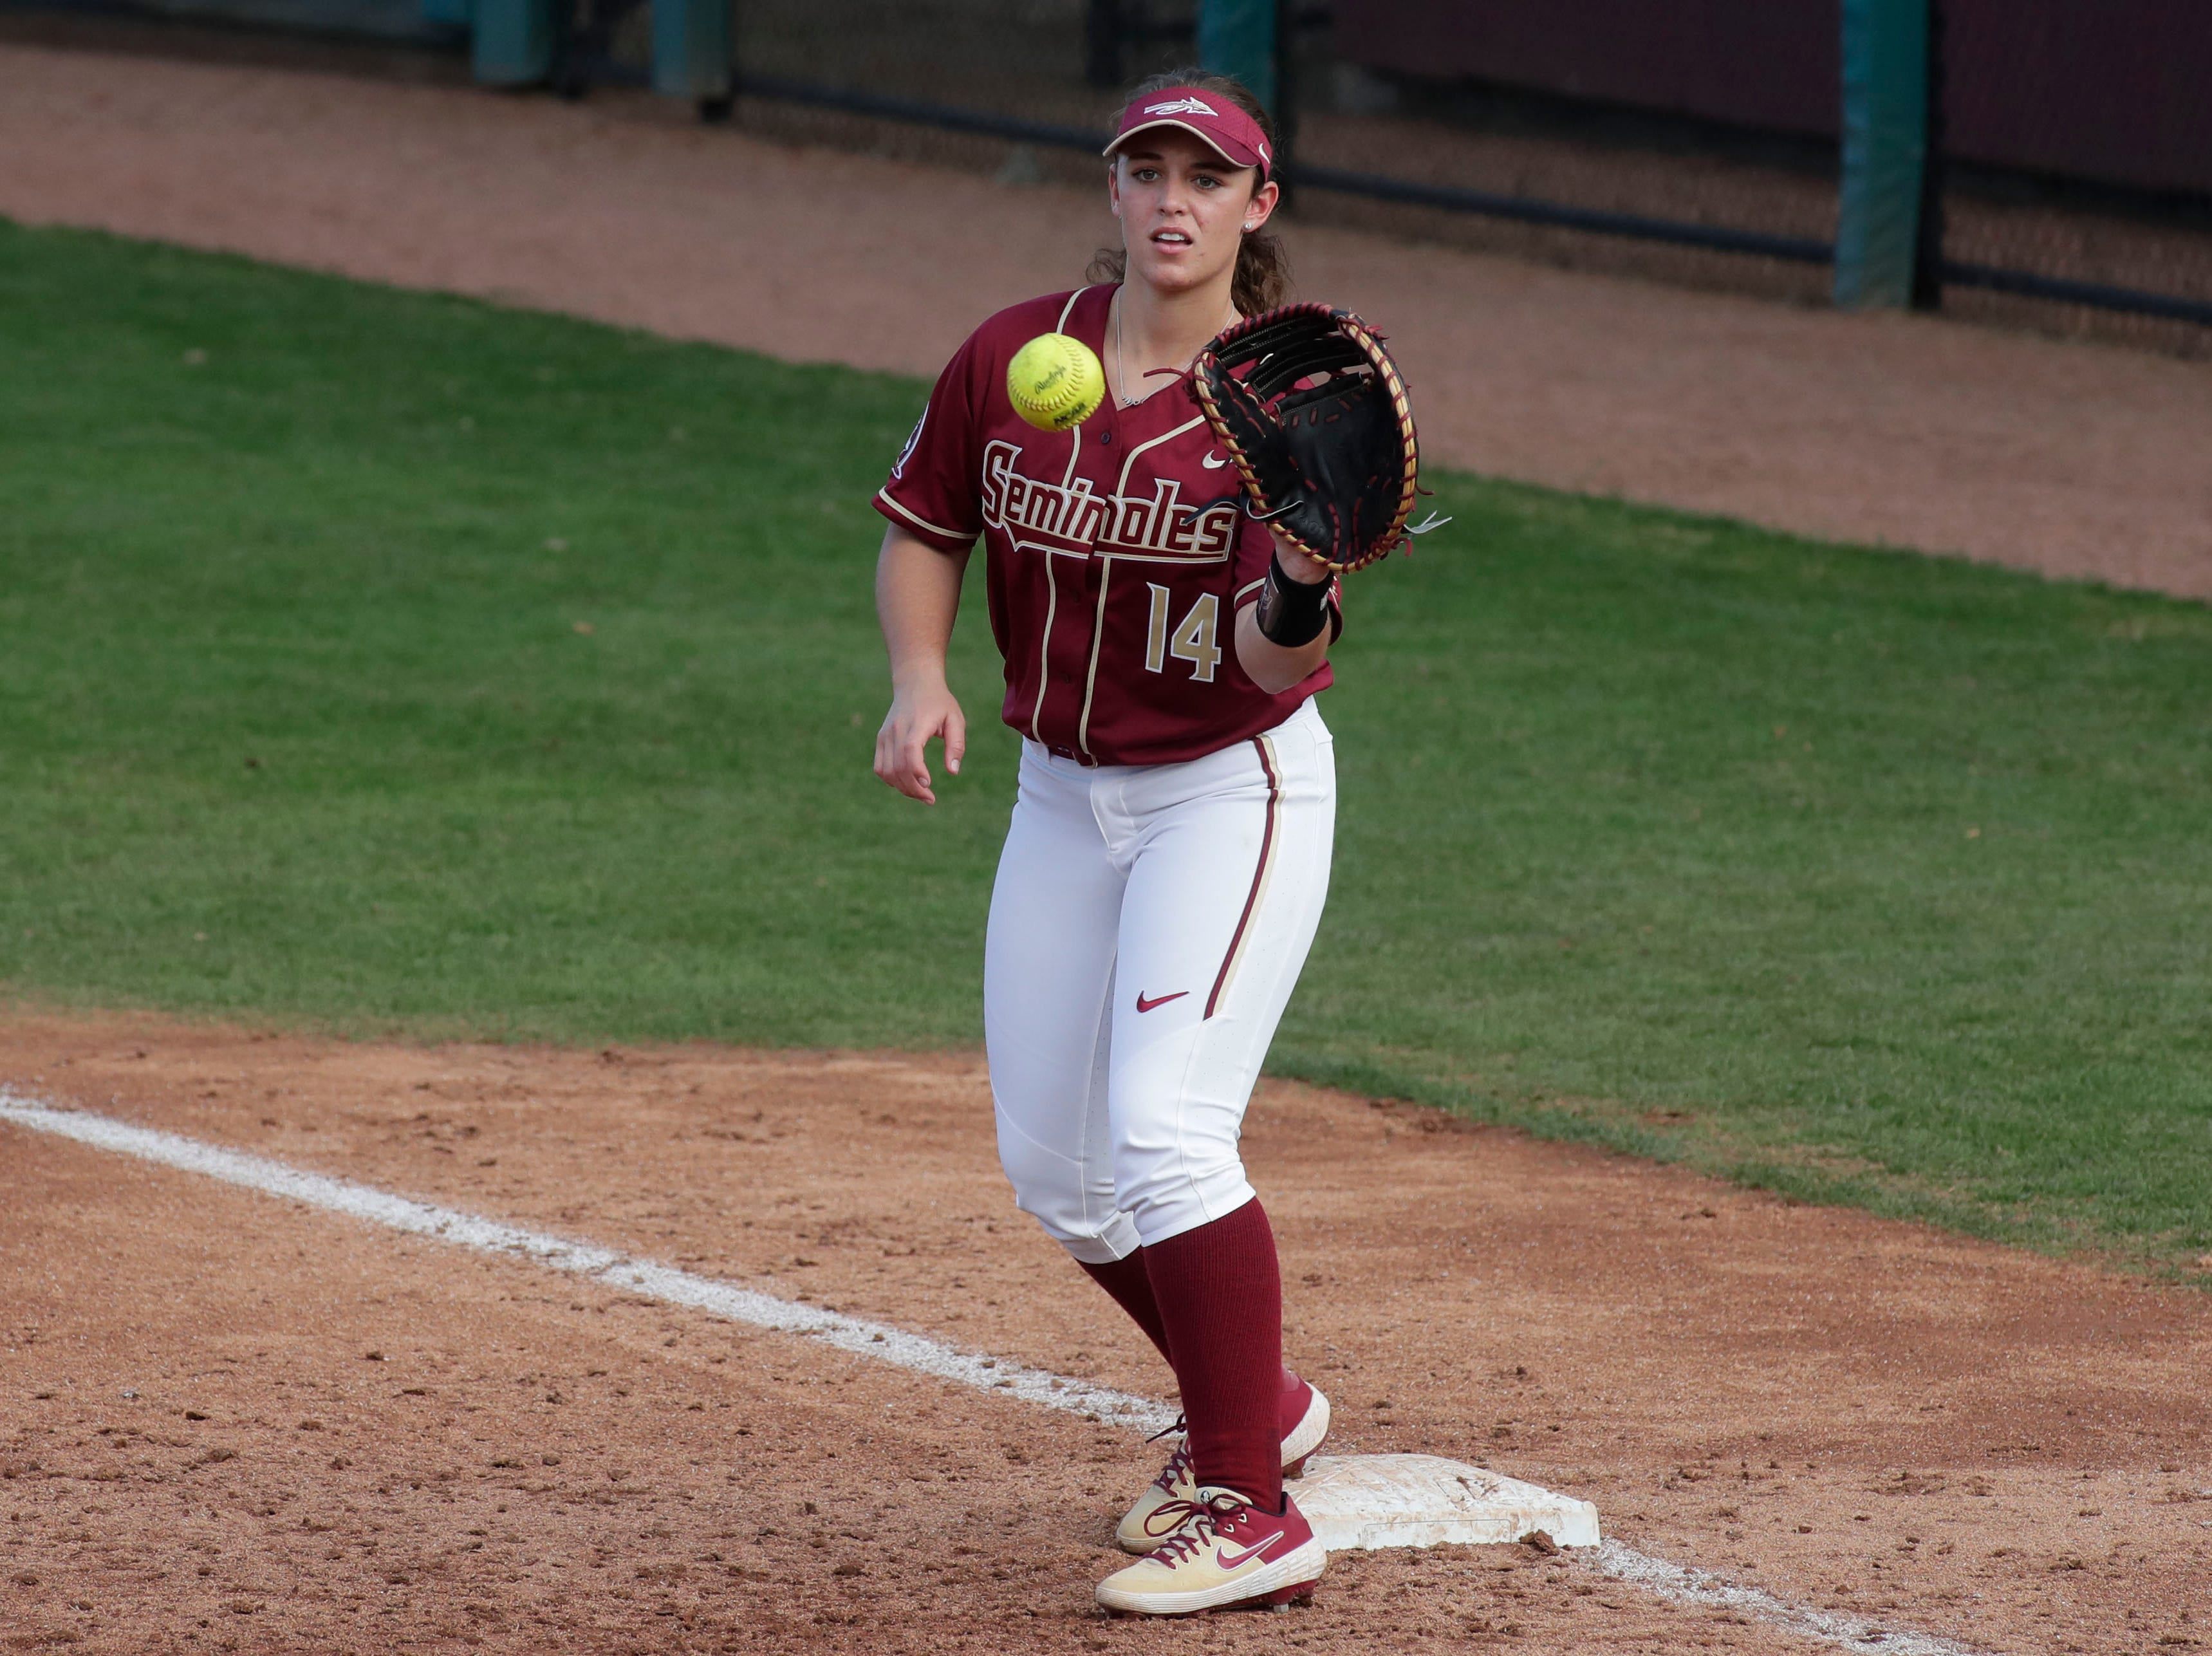 Florida State Seminoles utility player Savannah Parker (14) catches the ball at first base to get an out. The Florida State Seminoles host the Elon Phoenixes for the Unconquered Tournament, Friday Feb. 22, 2019.